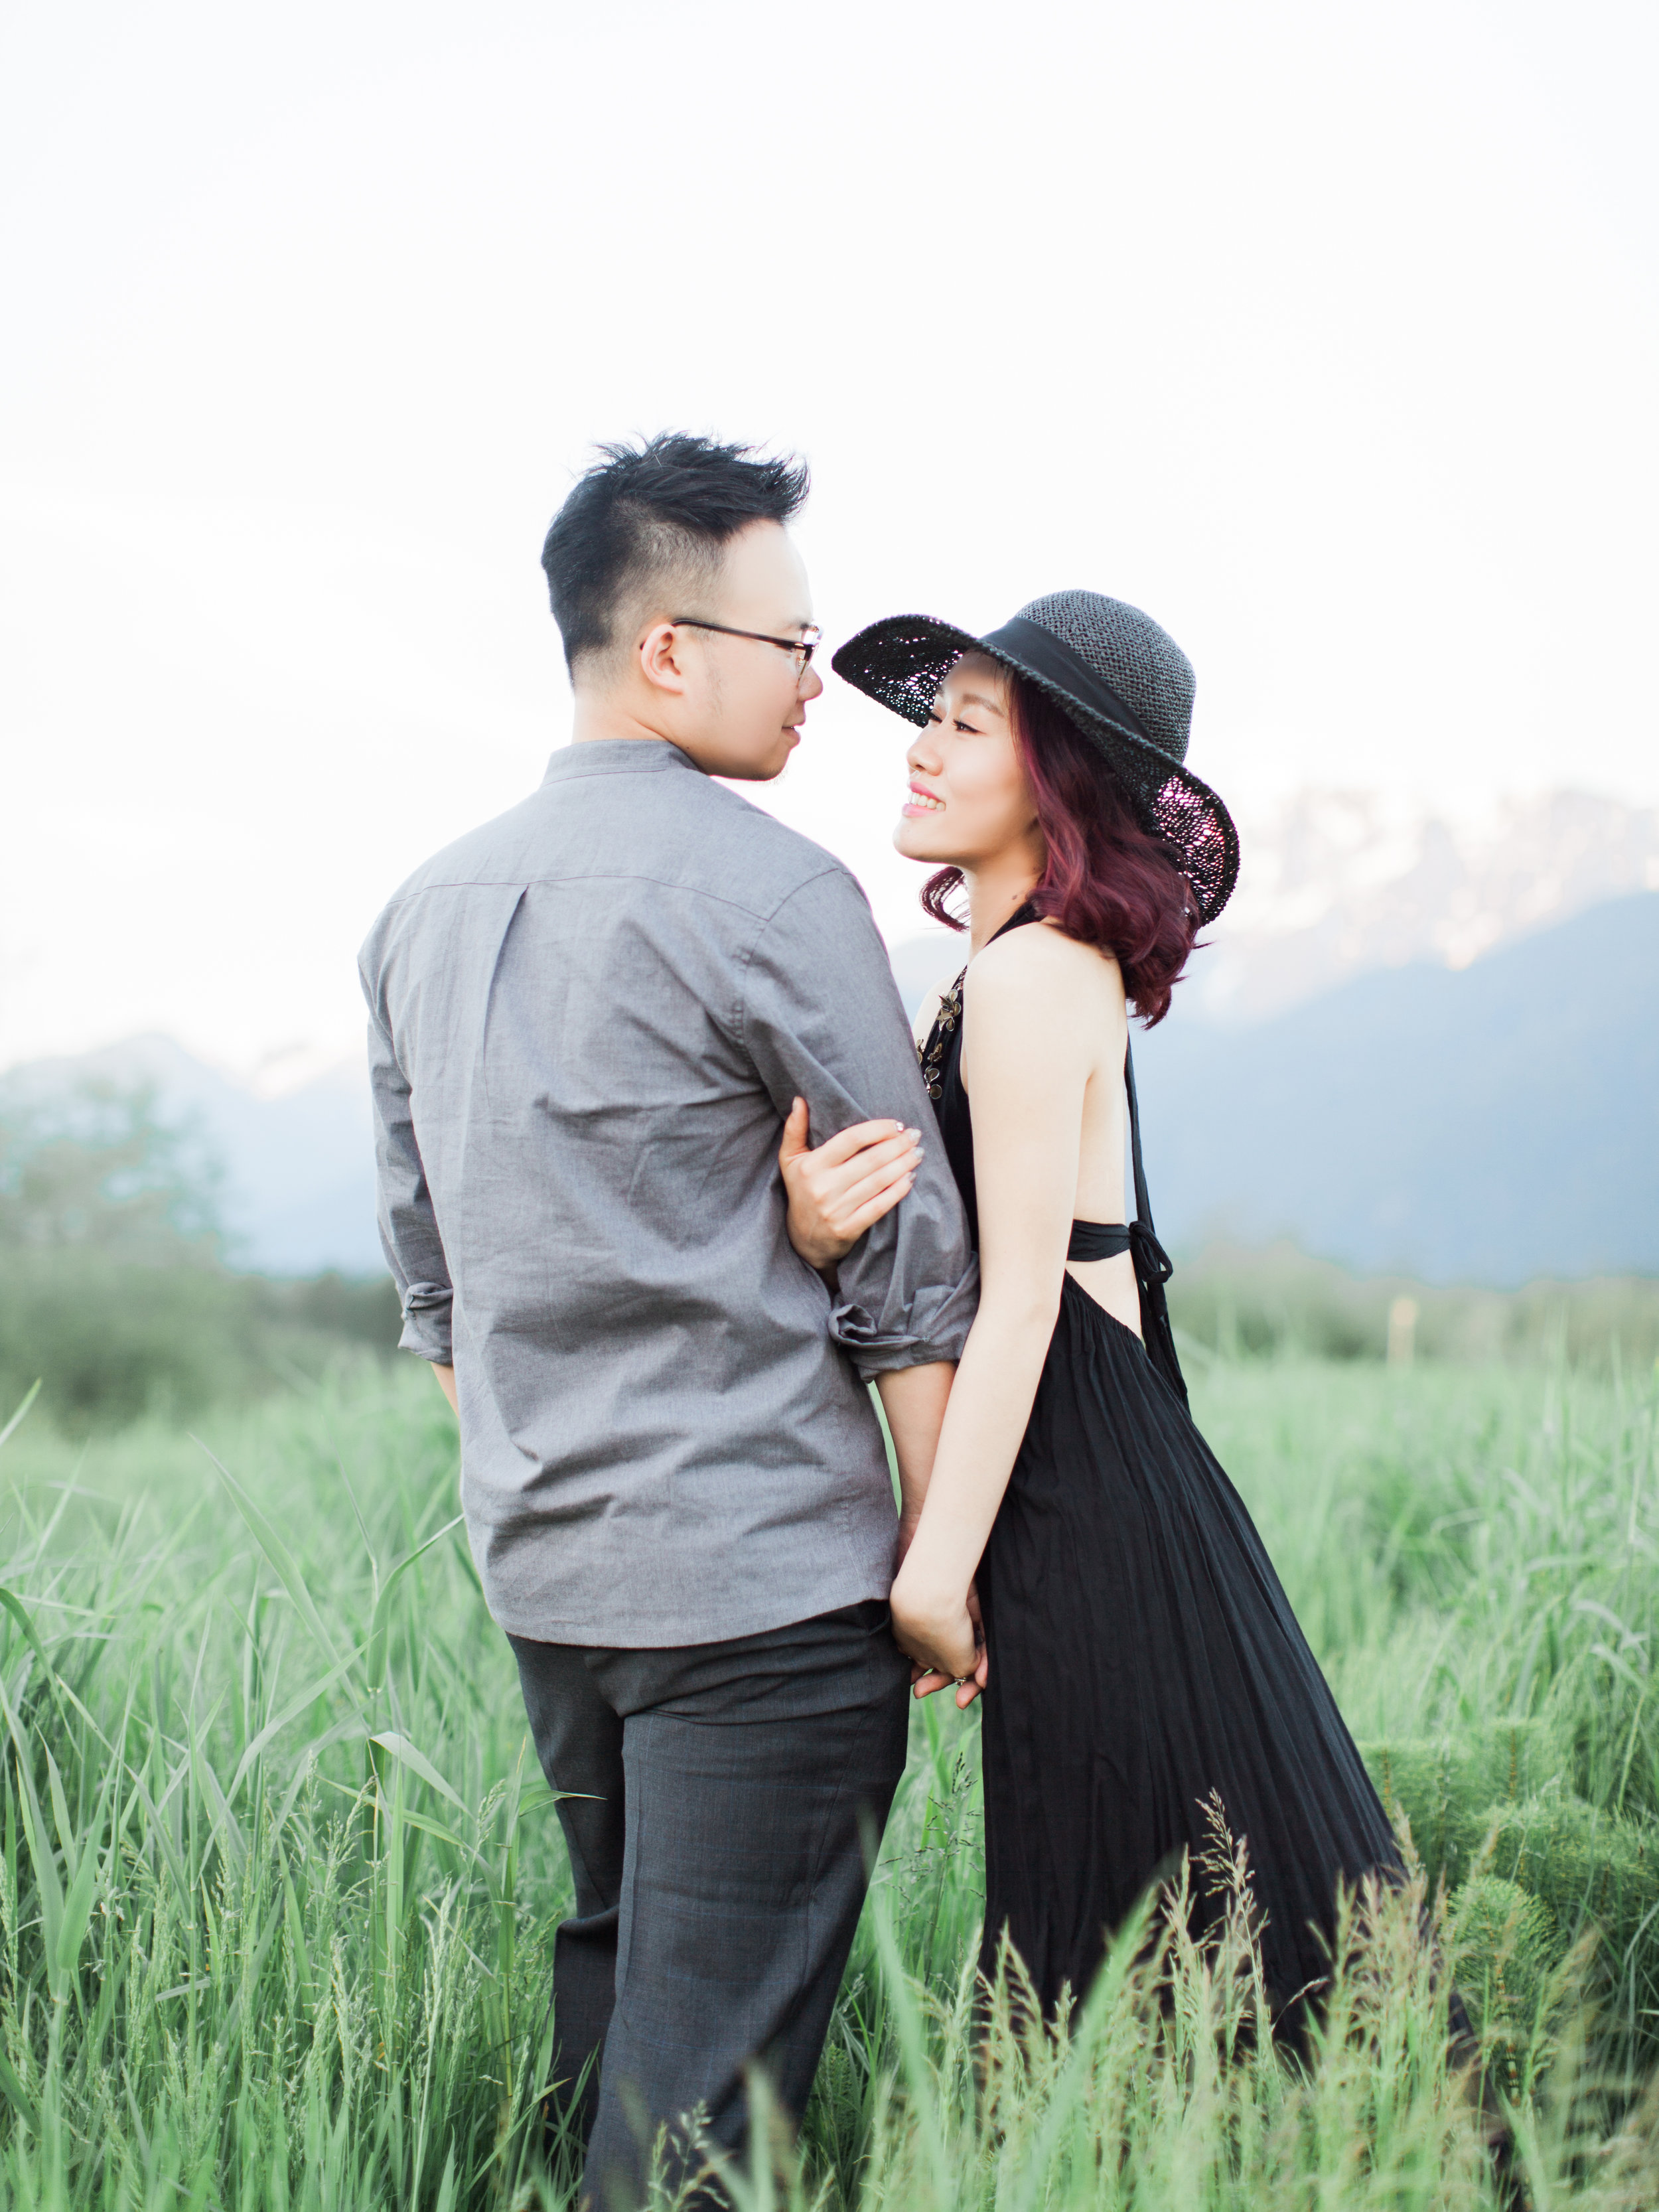 20170528Maple_Ridge_Engagement_Mary_Marco_Prewedding-43 copy.jpg